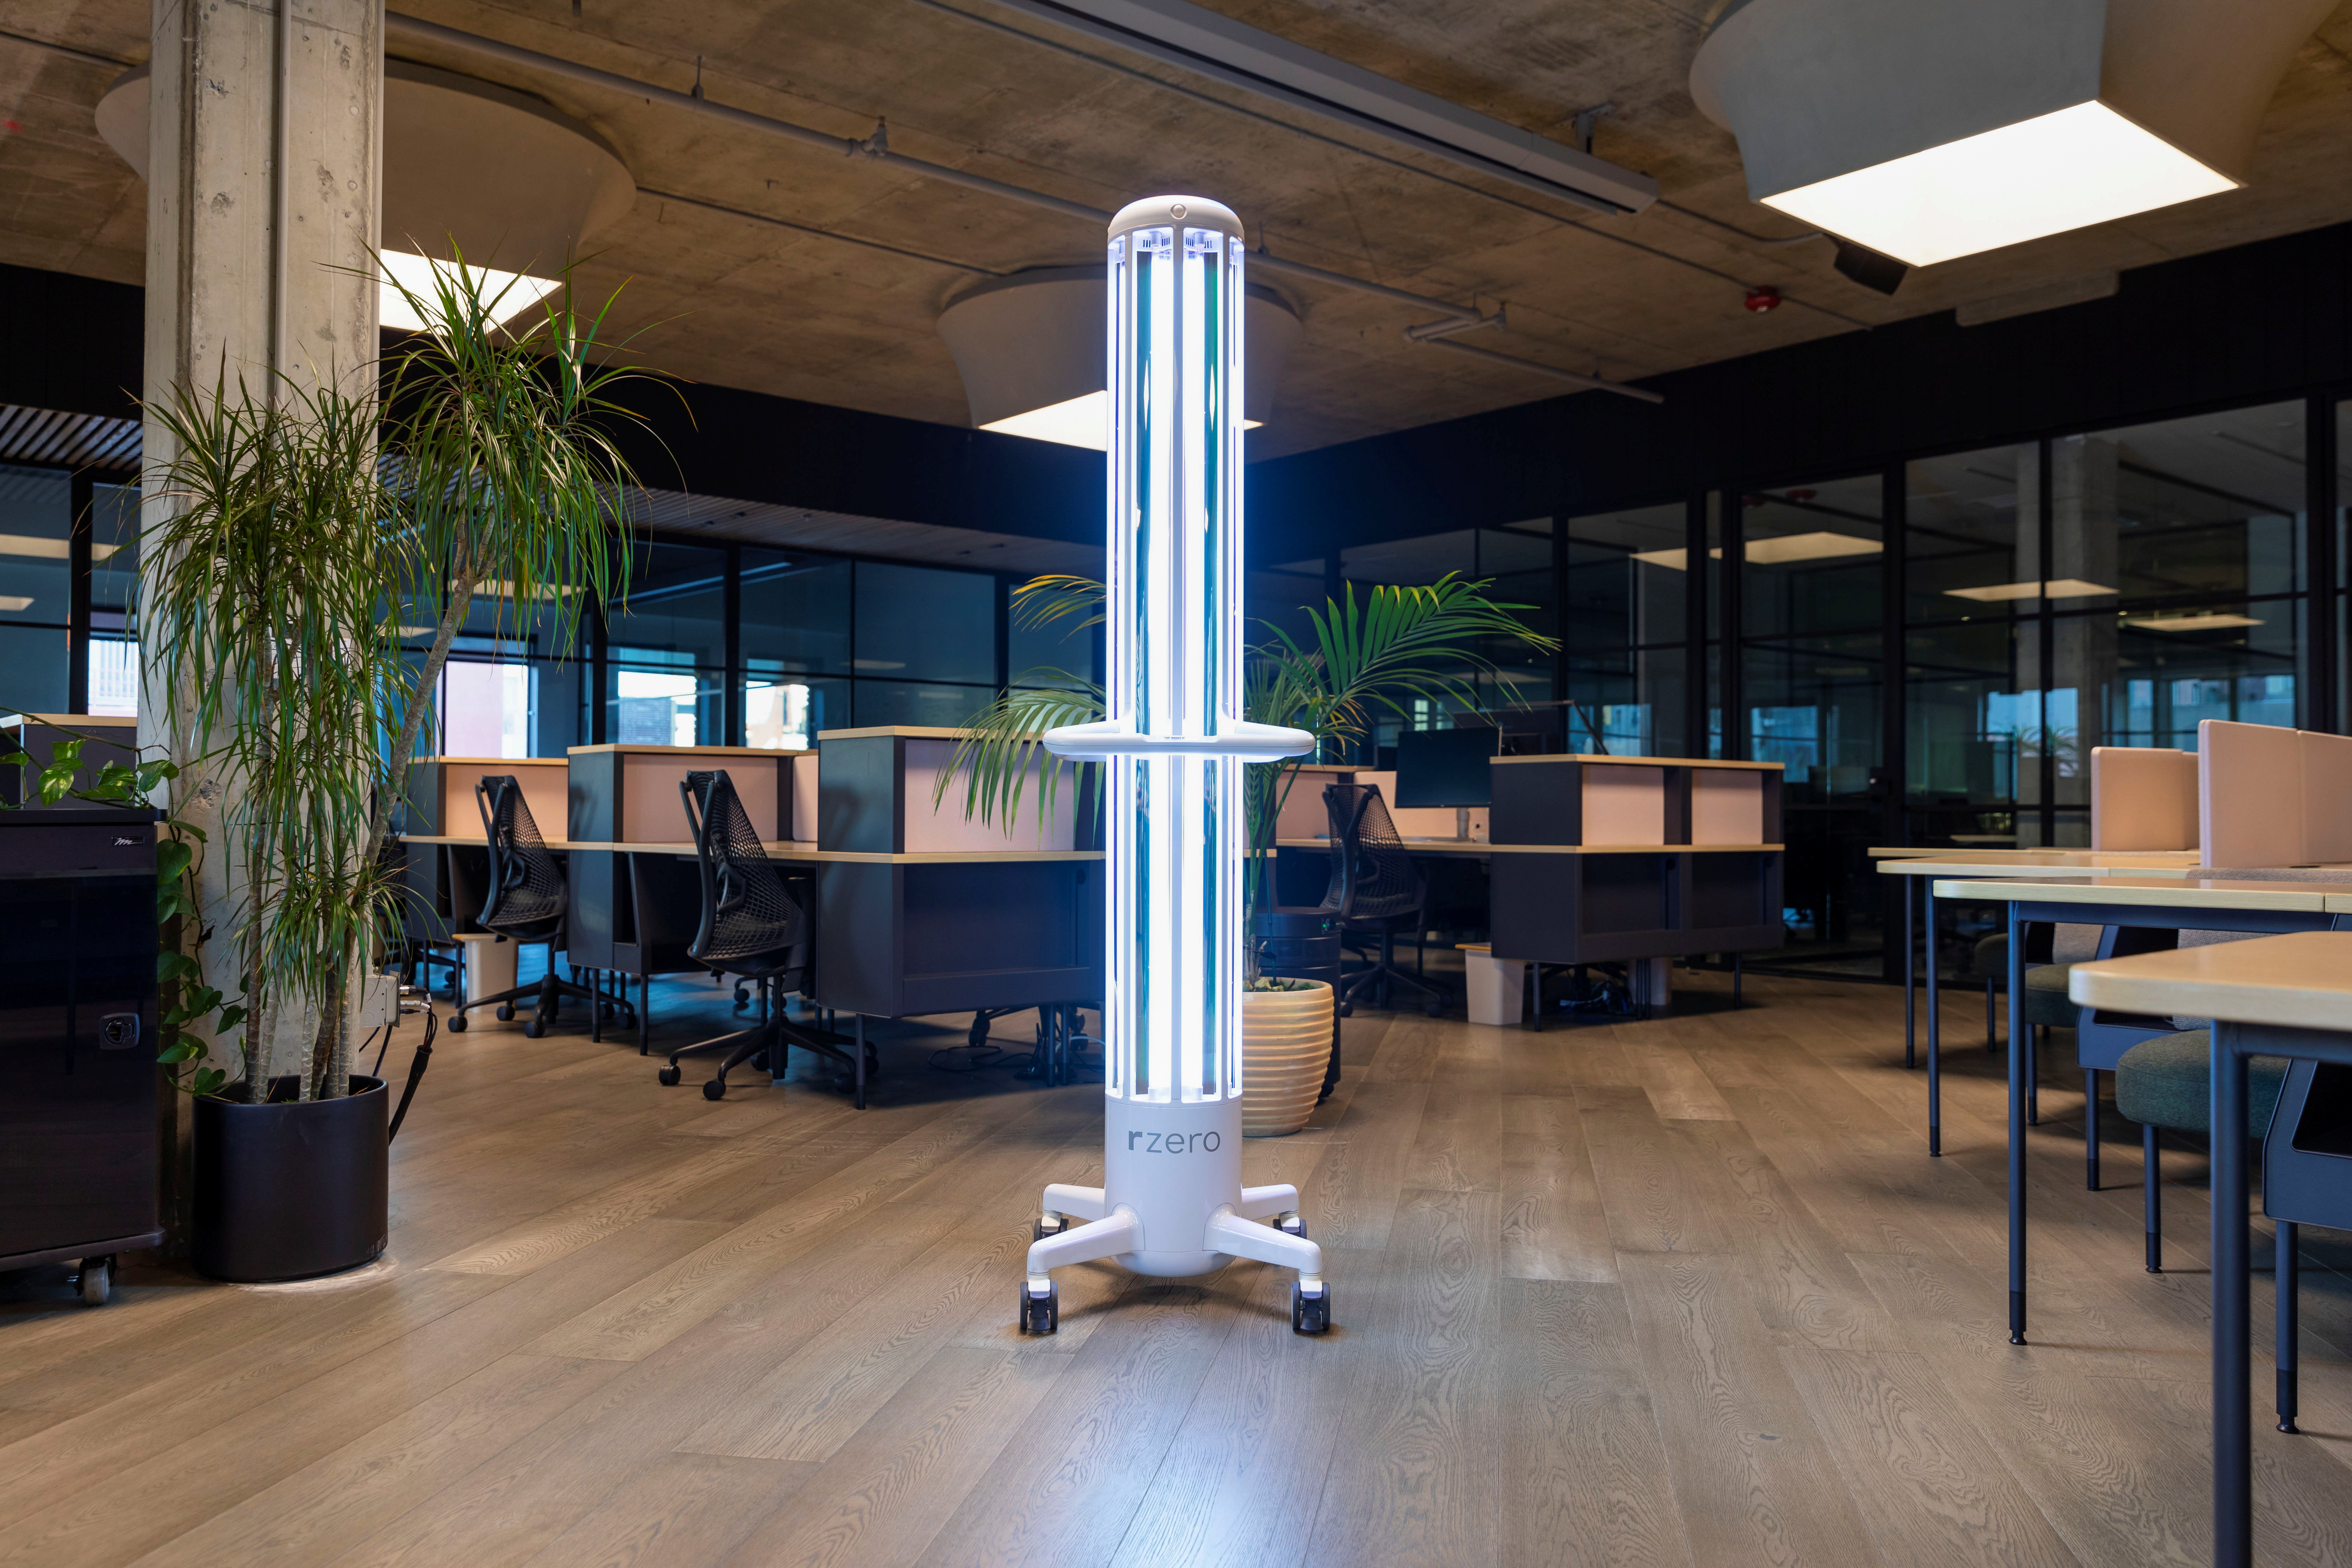 R-Zero?s UV-C light disinfection system, Arc, in seen at an office in San Francisco, U.S. May 2021. R-ZERO/Handout via REUTERS